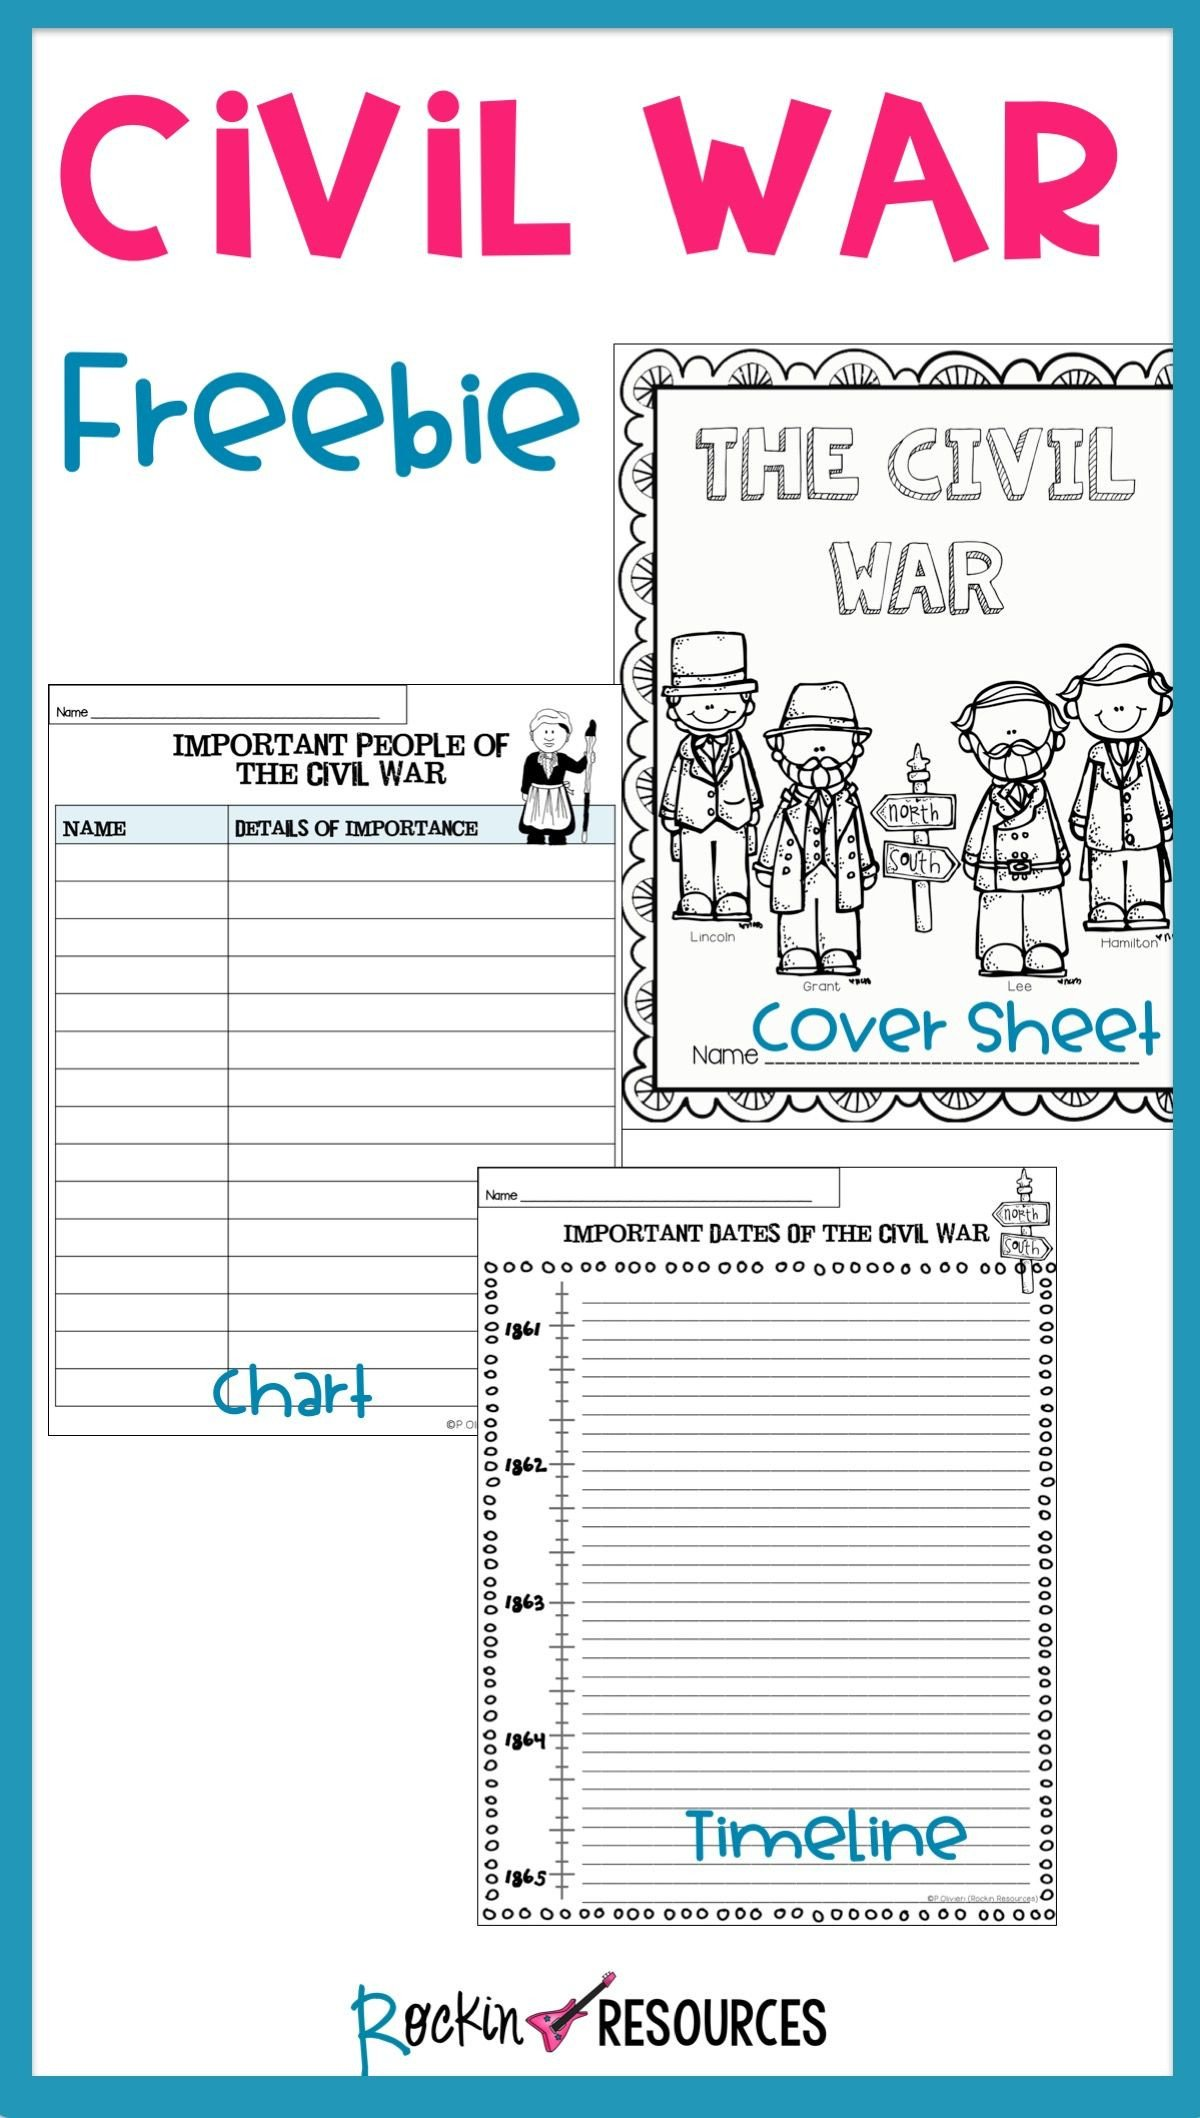 Free Us History Worksheets Civil War Timeline Cover Page and Chart Free